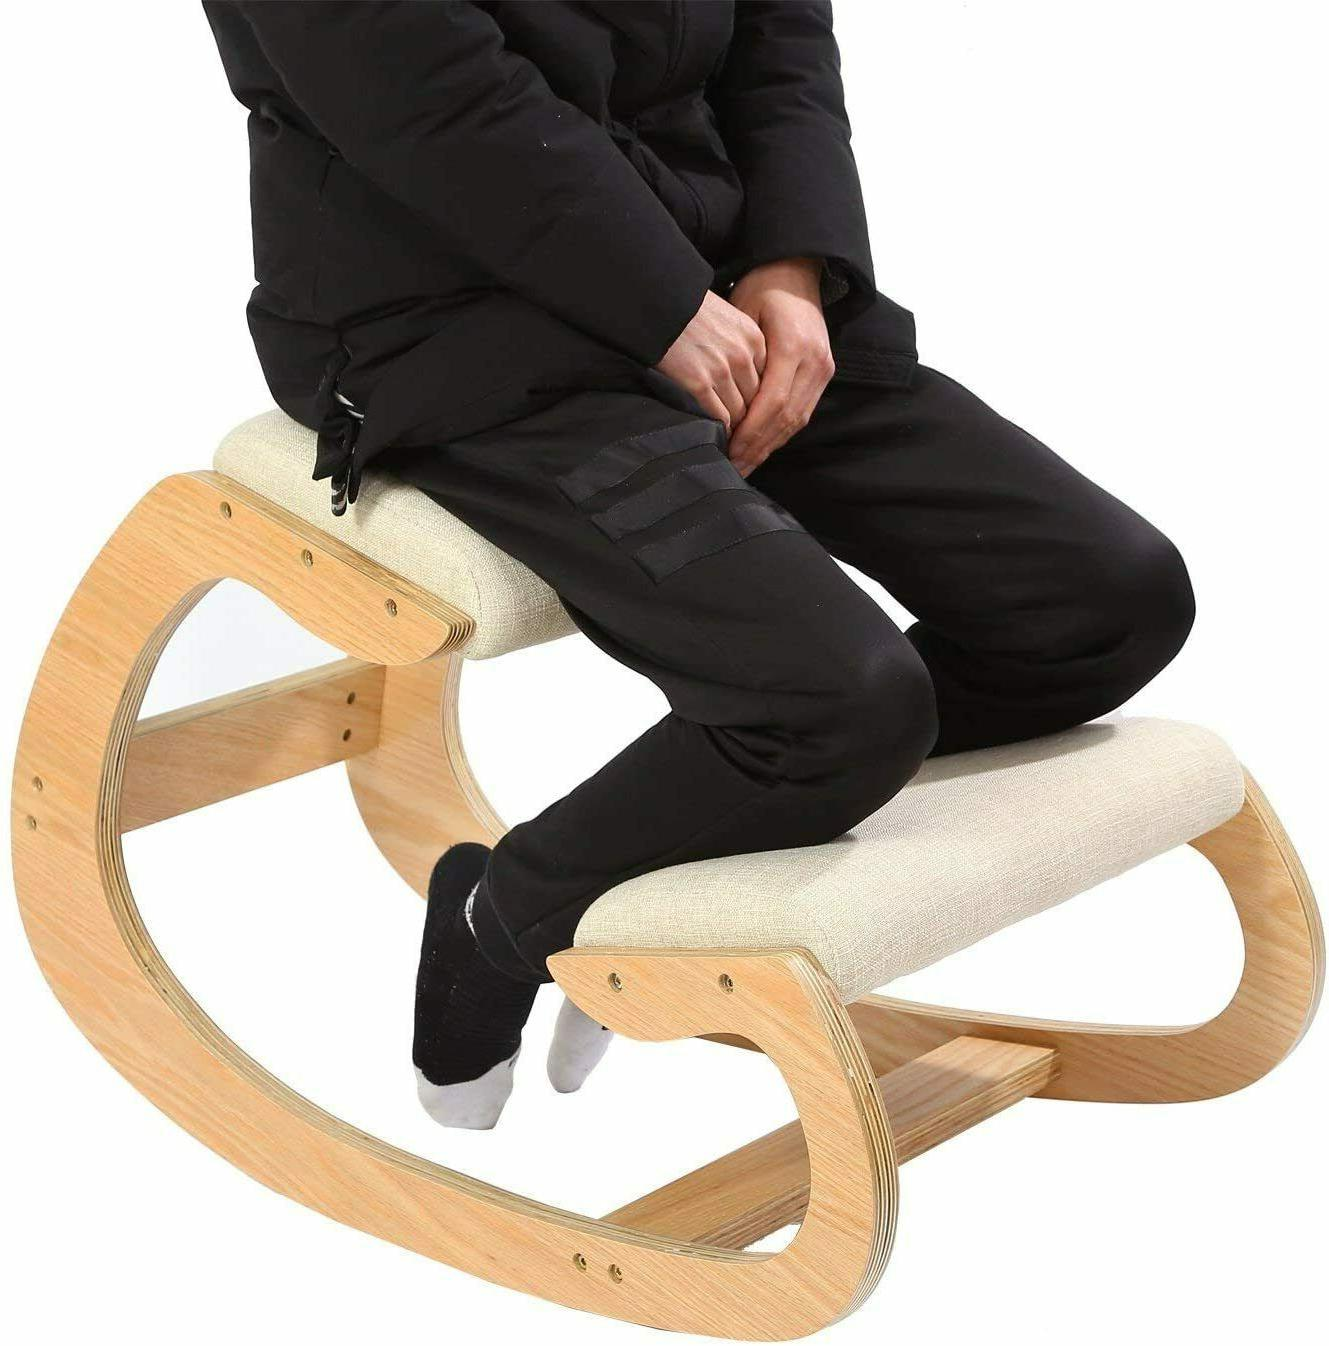 ergonomic kneeling chair for upright posture rocking